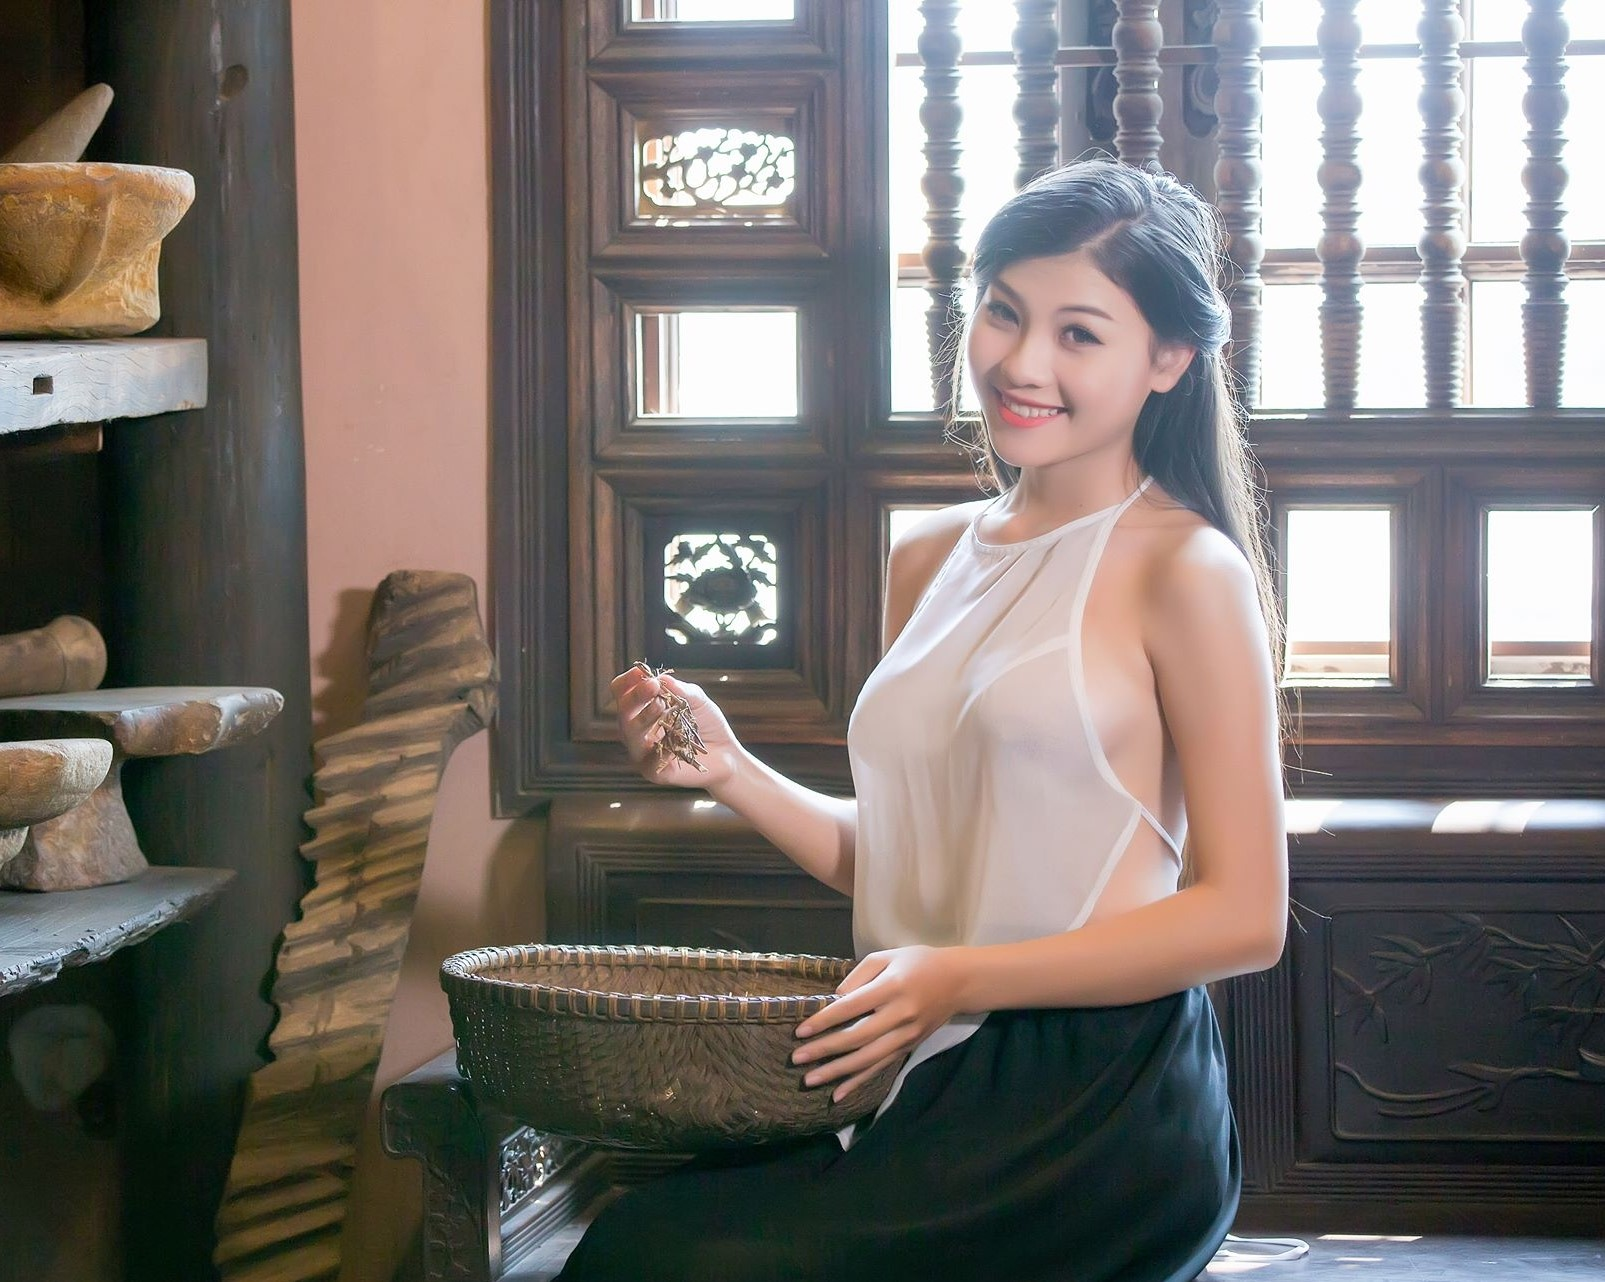 """thich khoe than chup anh nude, cac """"hot girl"""", nguoi mau duoc gi? hinh anh 3"""